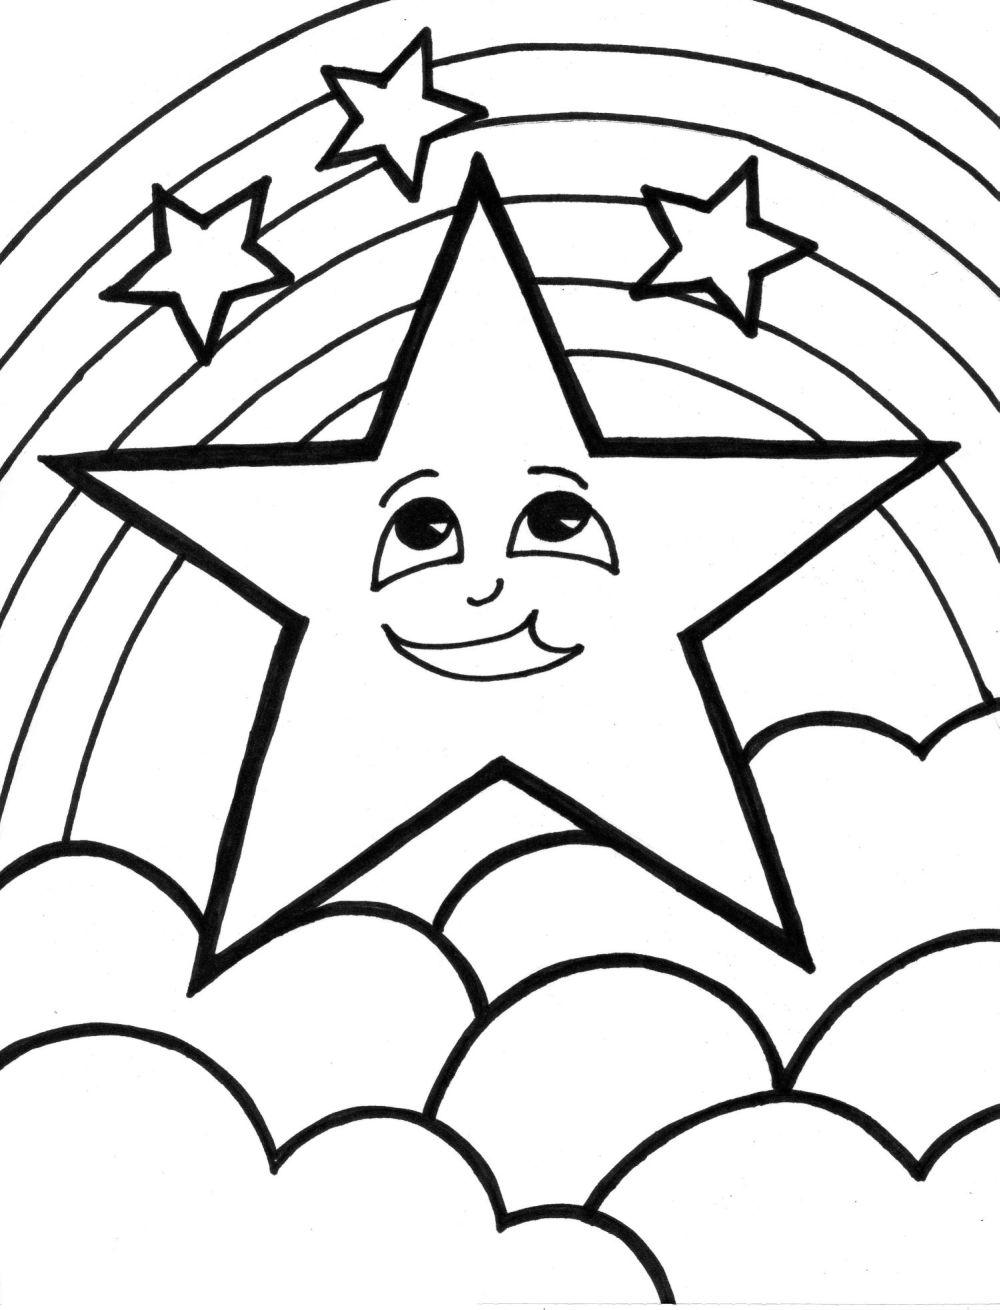 large printable star coloring pages - photo #30